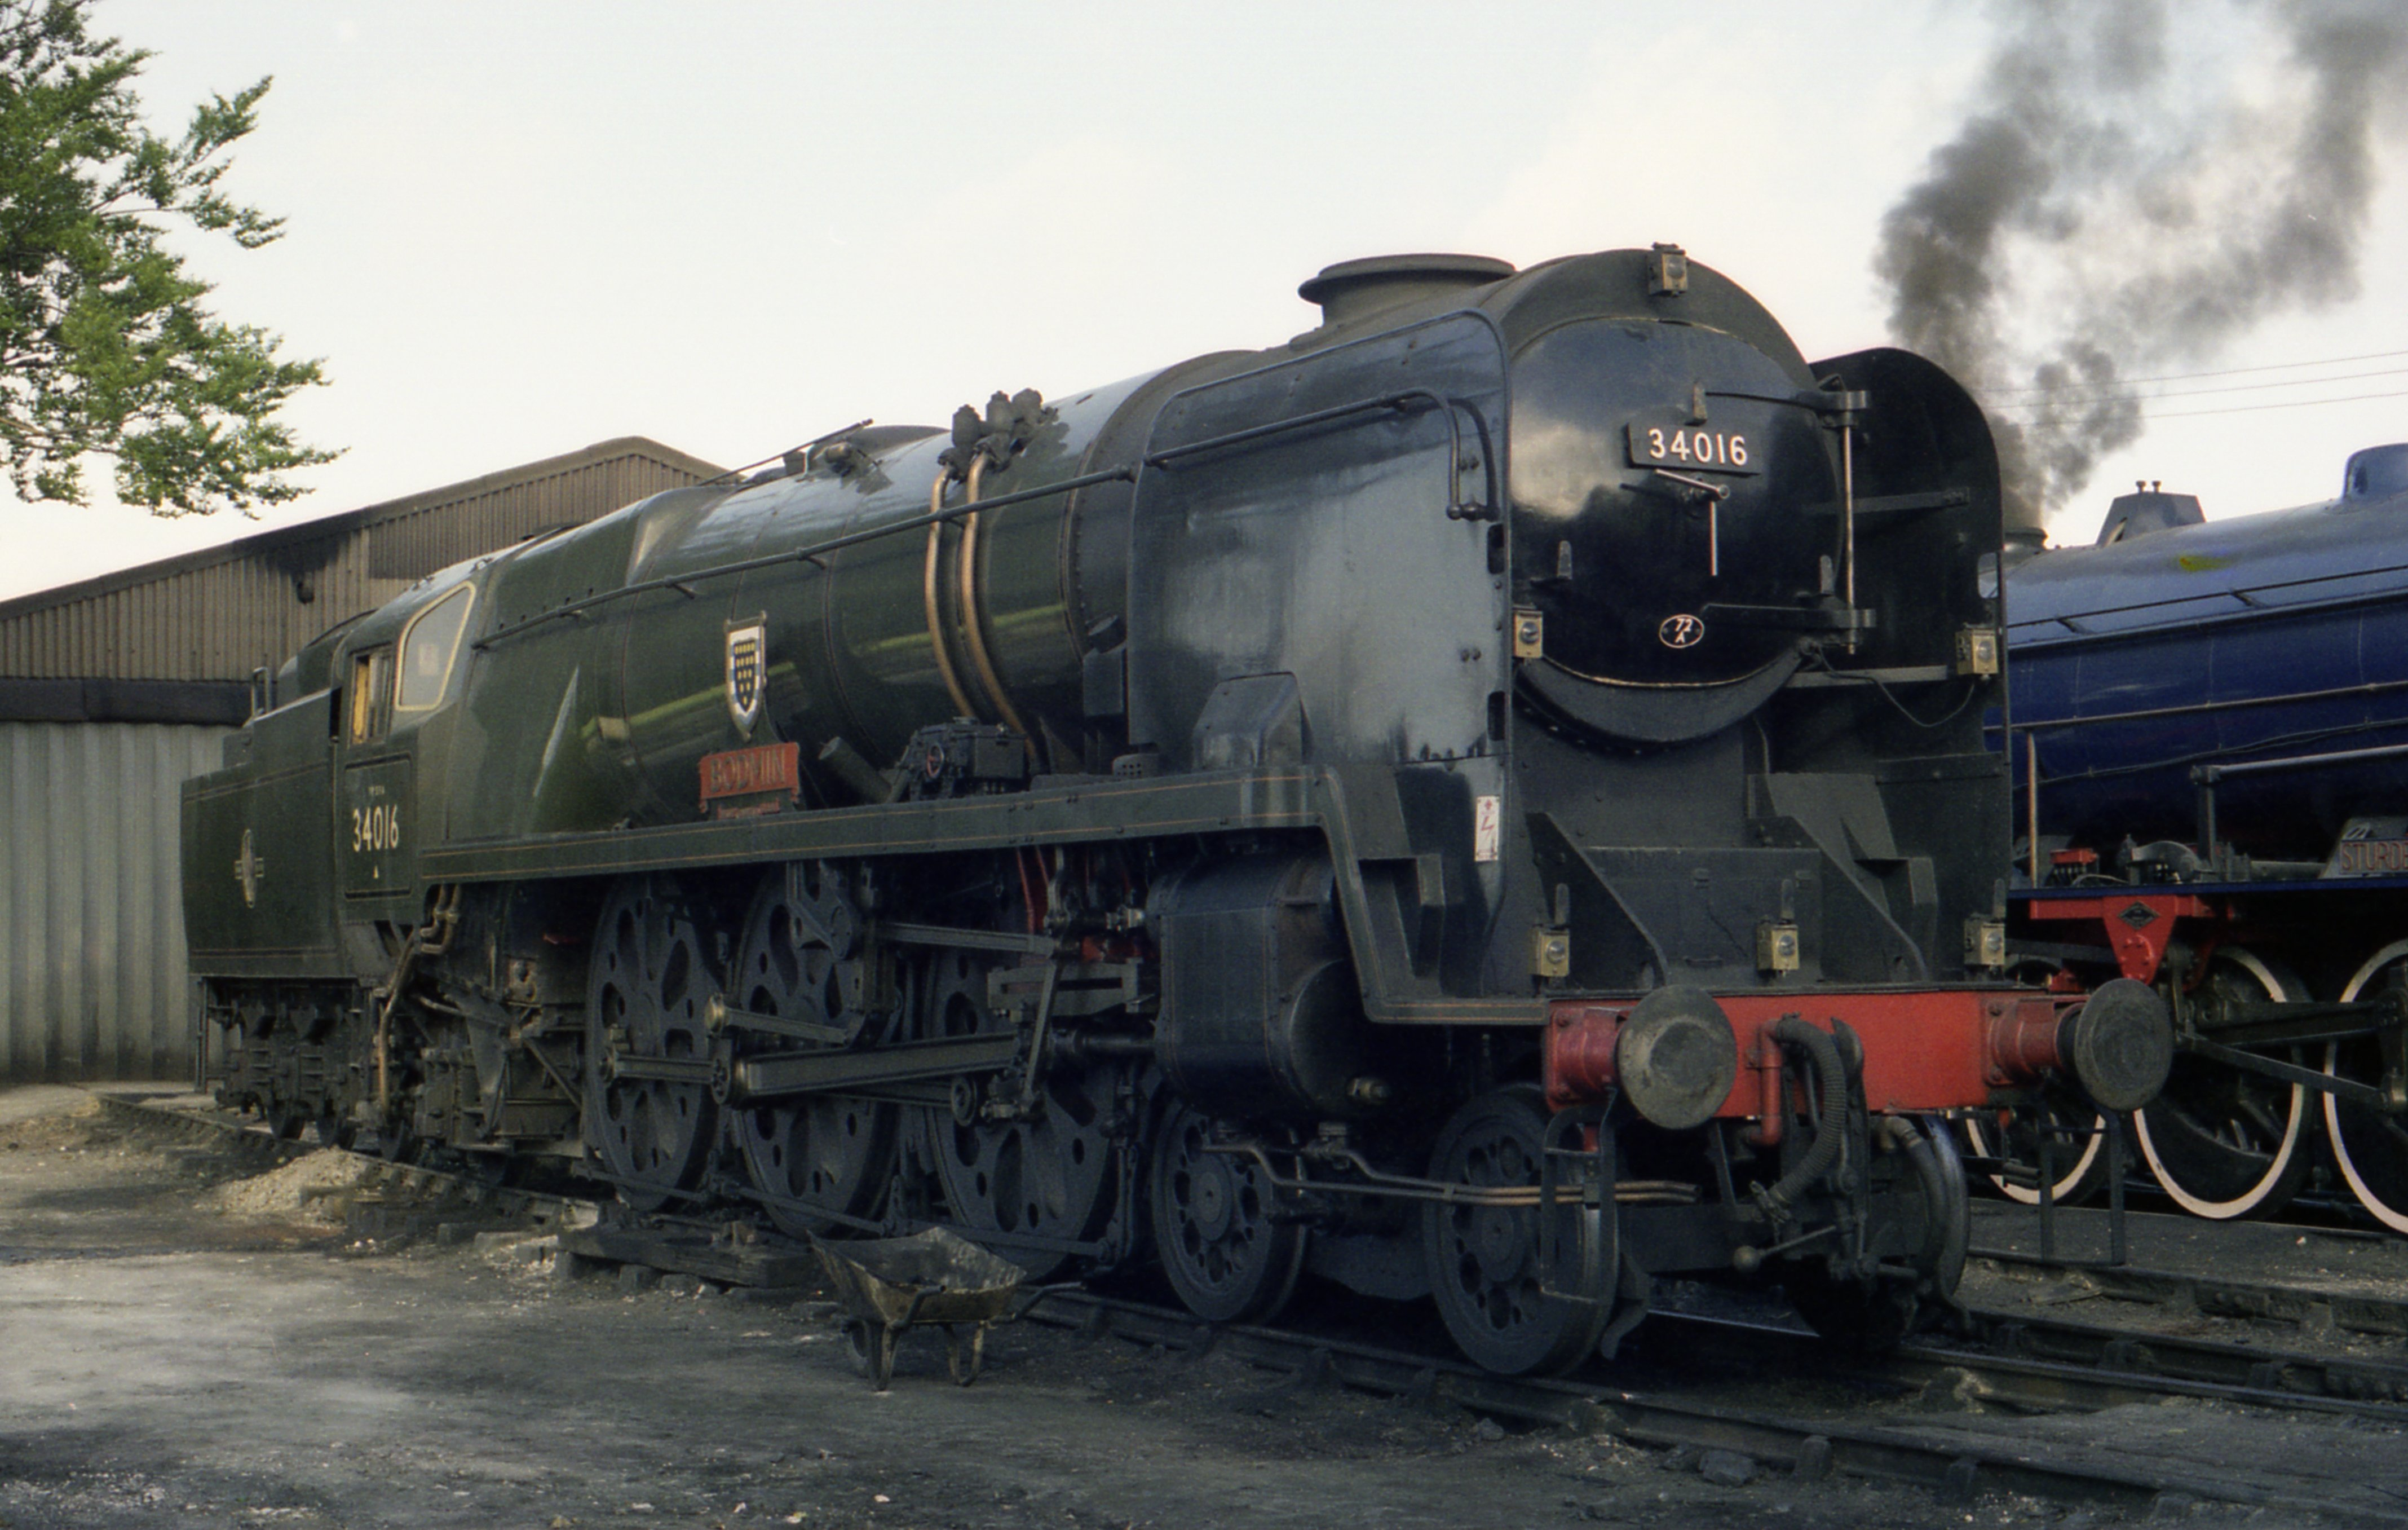 File:West Country class pacific No 34016 Bodmin at Ropley ...